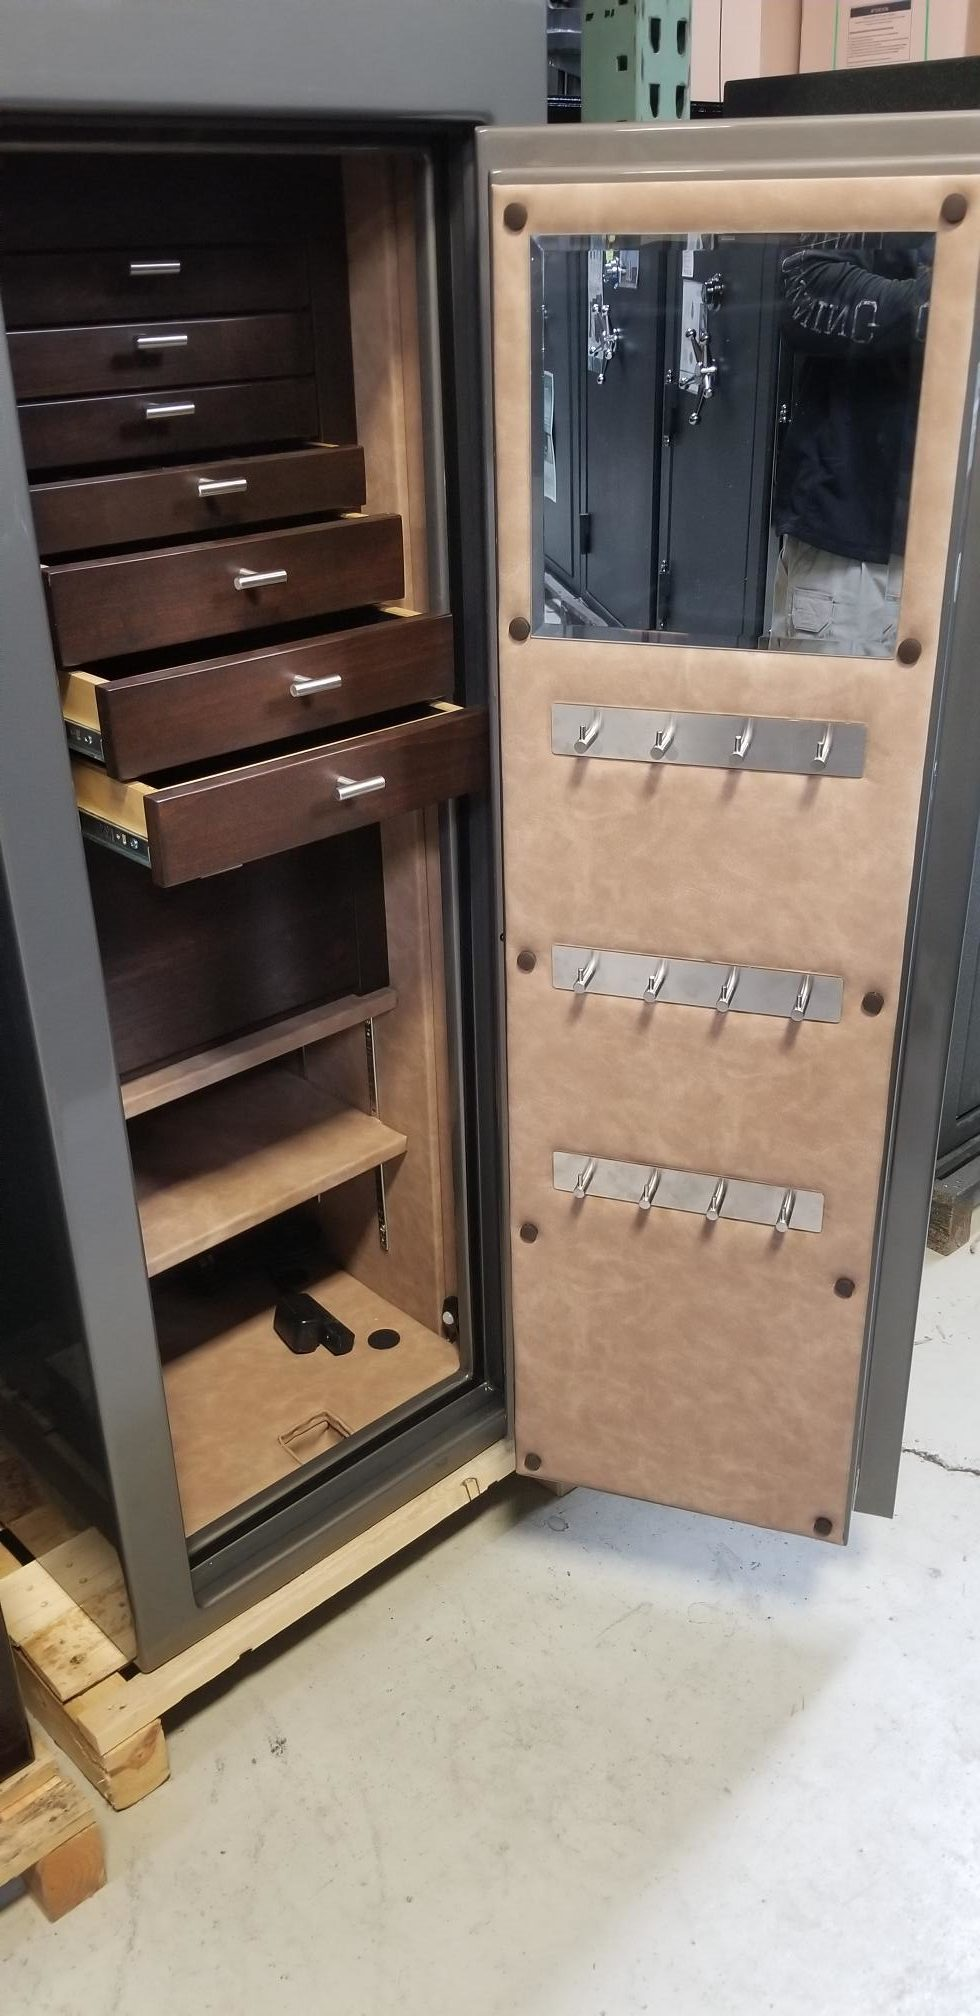 Fort Knox Jewelry Safes - NEW Models - Just Arrived - The